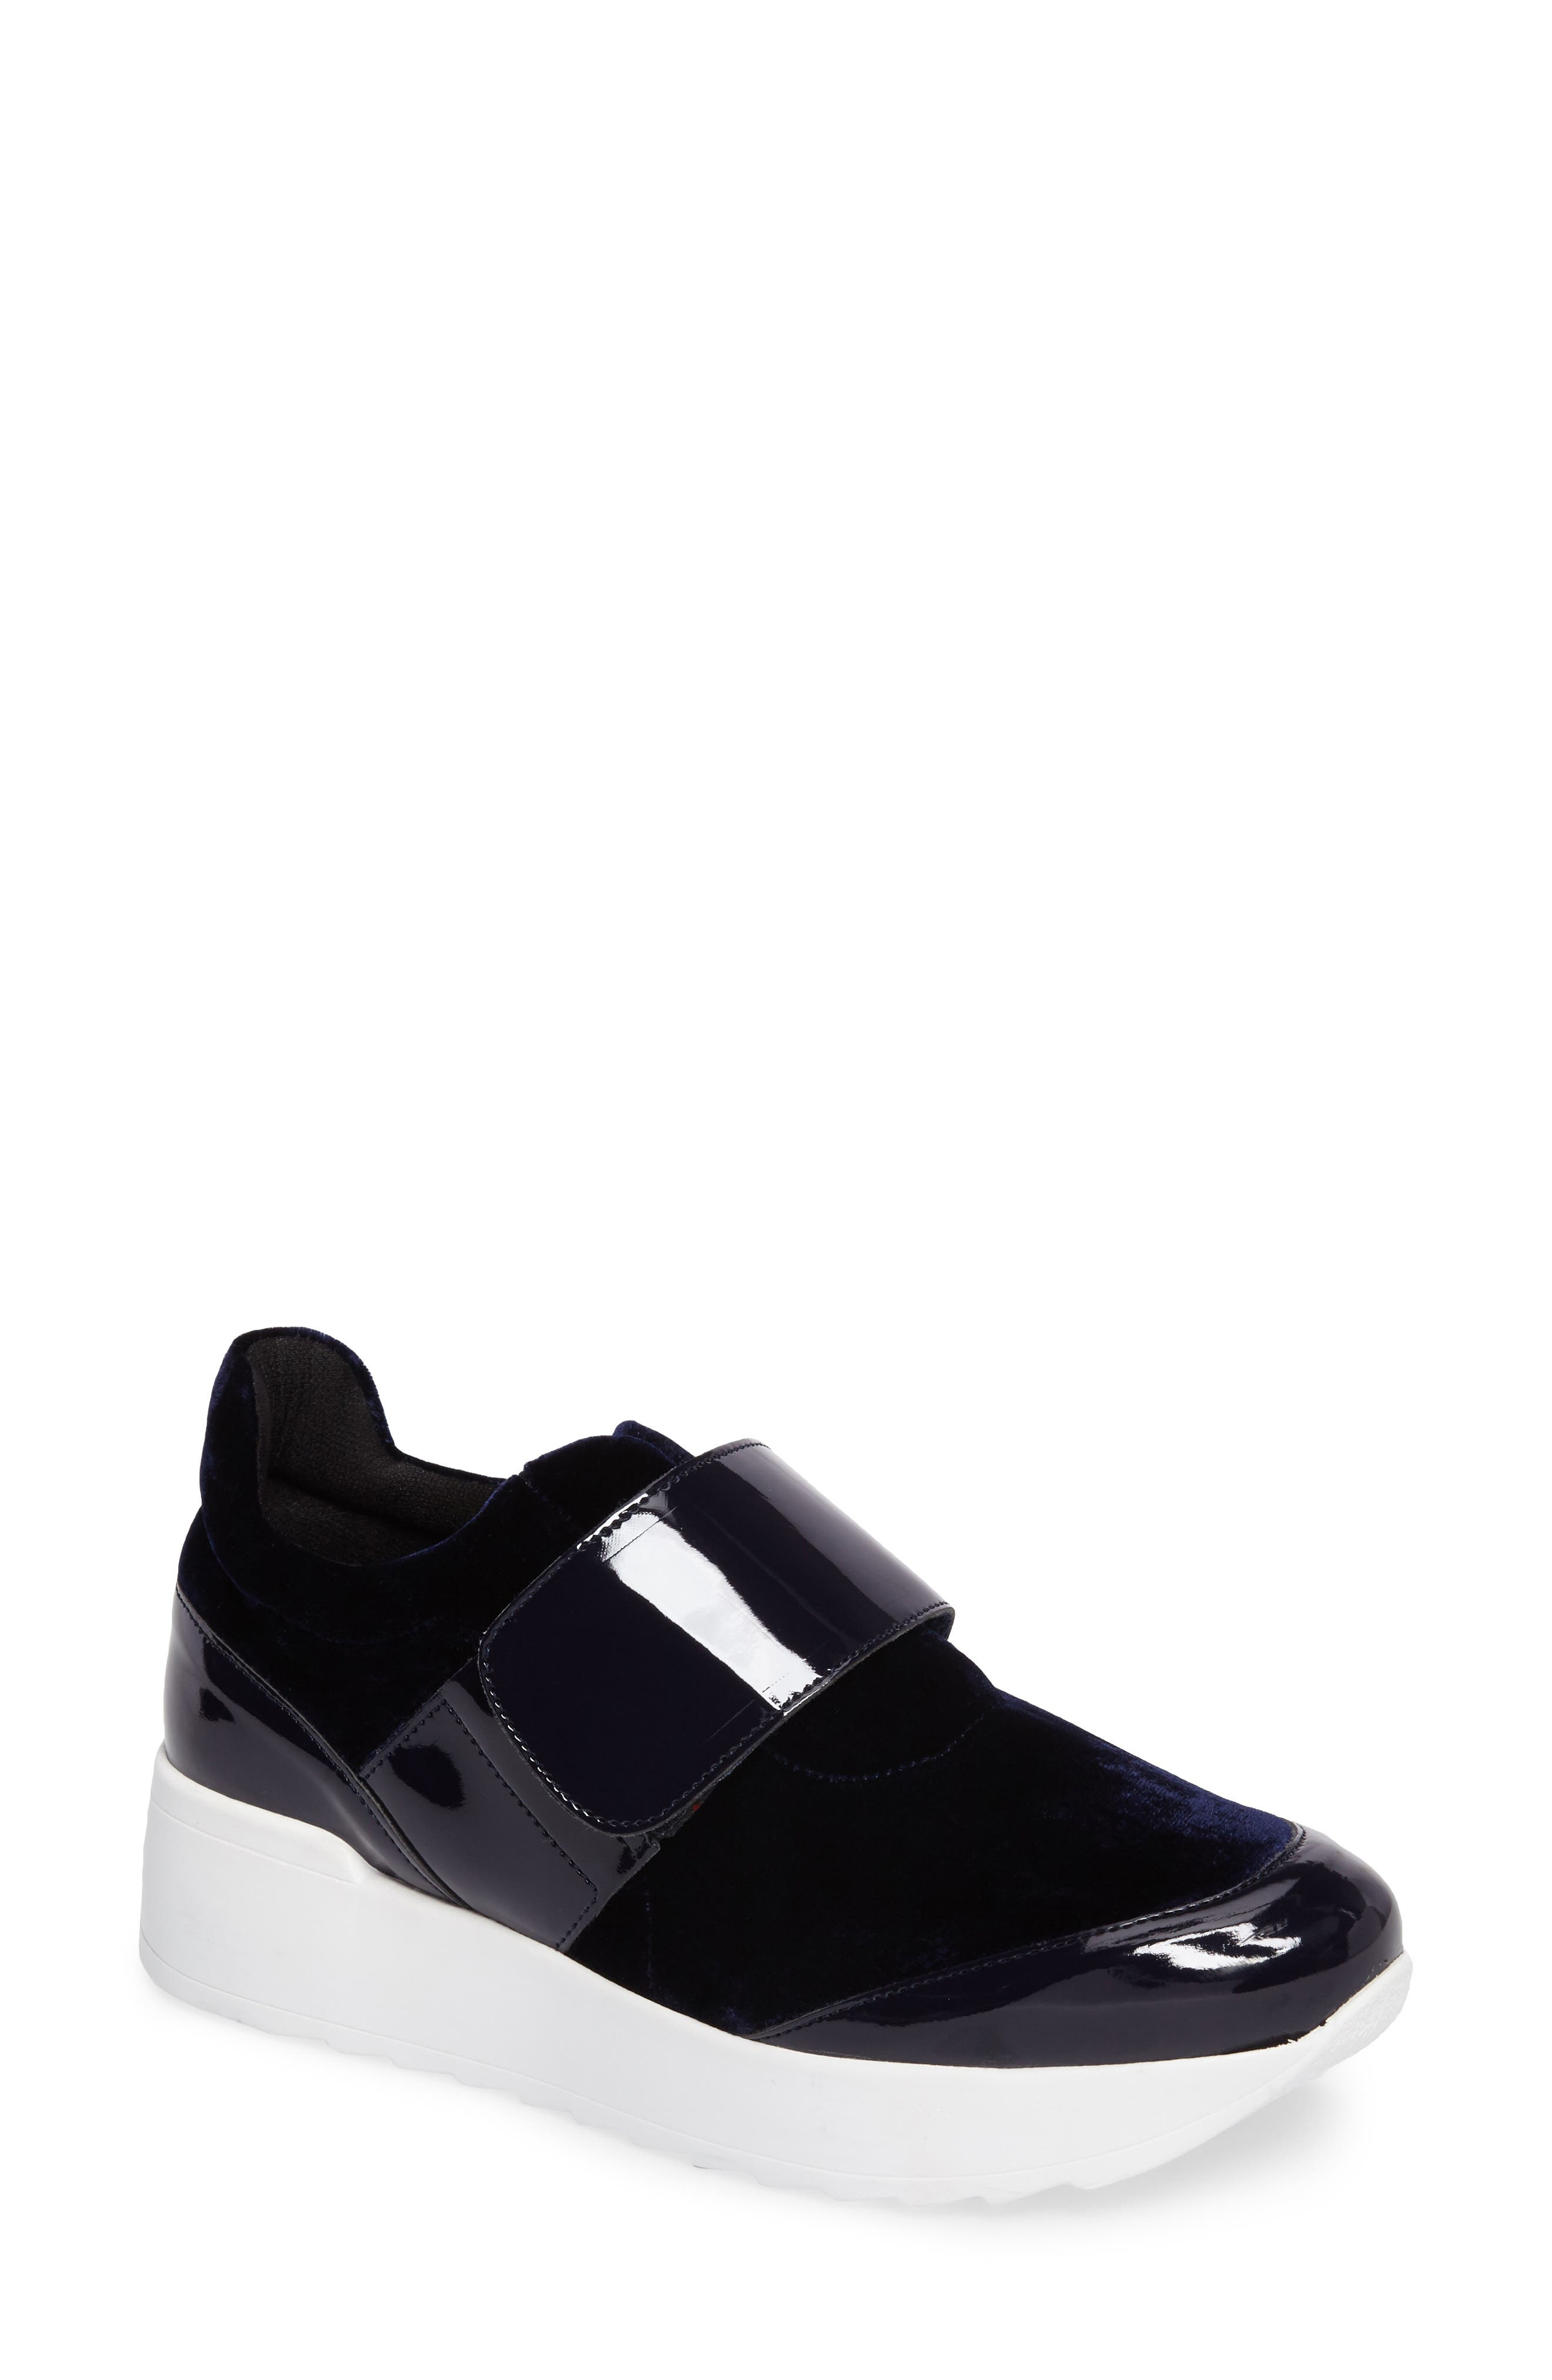 Cannon Sneaker,                         Main,                         color, Navy